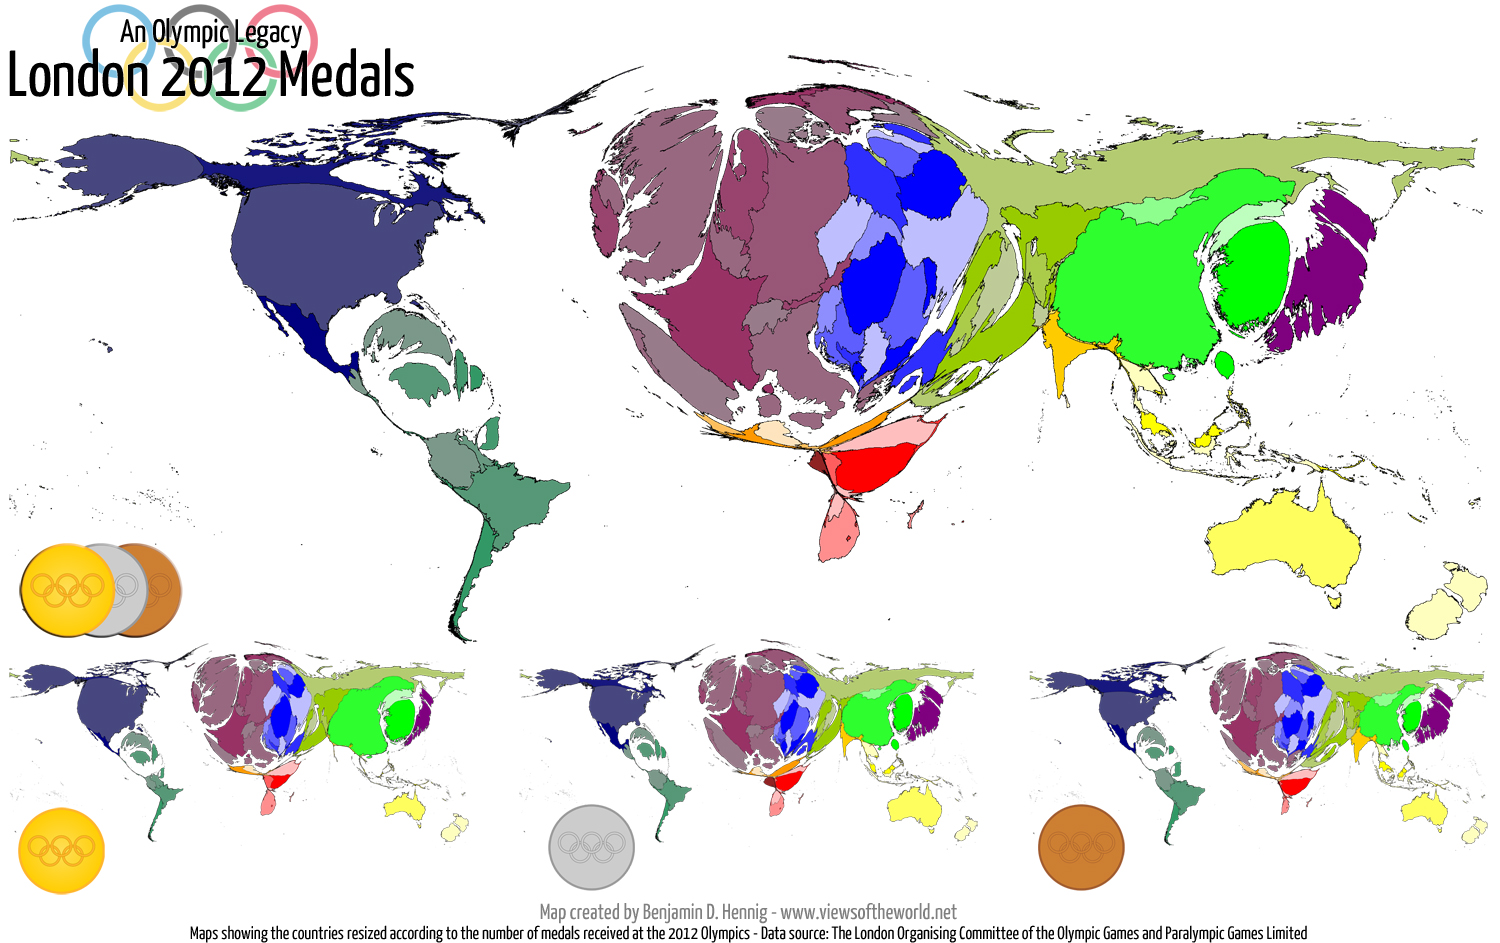 Olympic Gold Map Olympic legacy: London 2012 medal maps   Views of the World Olympic Gold Map